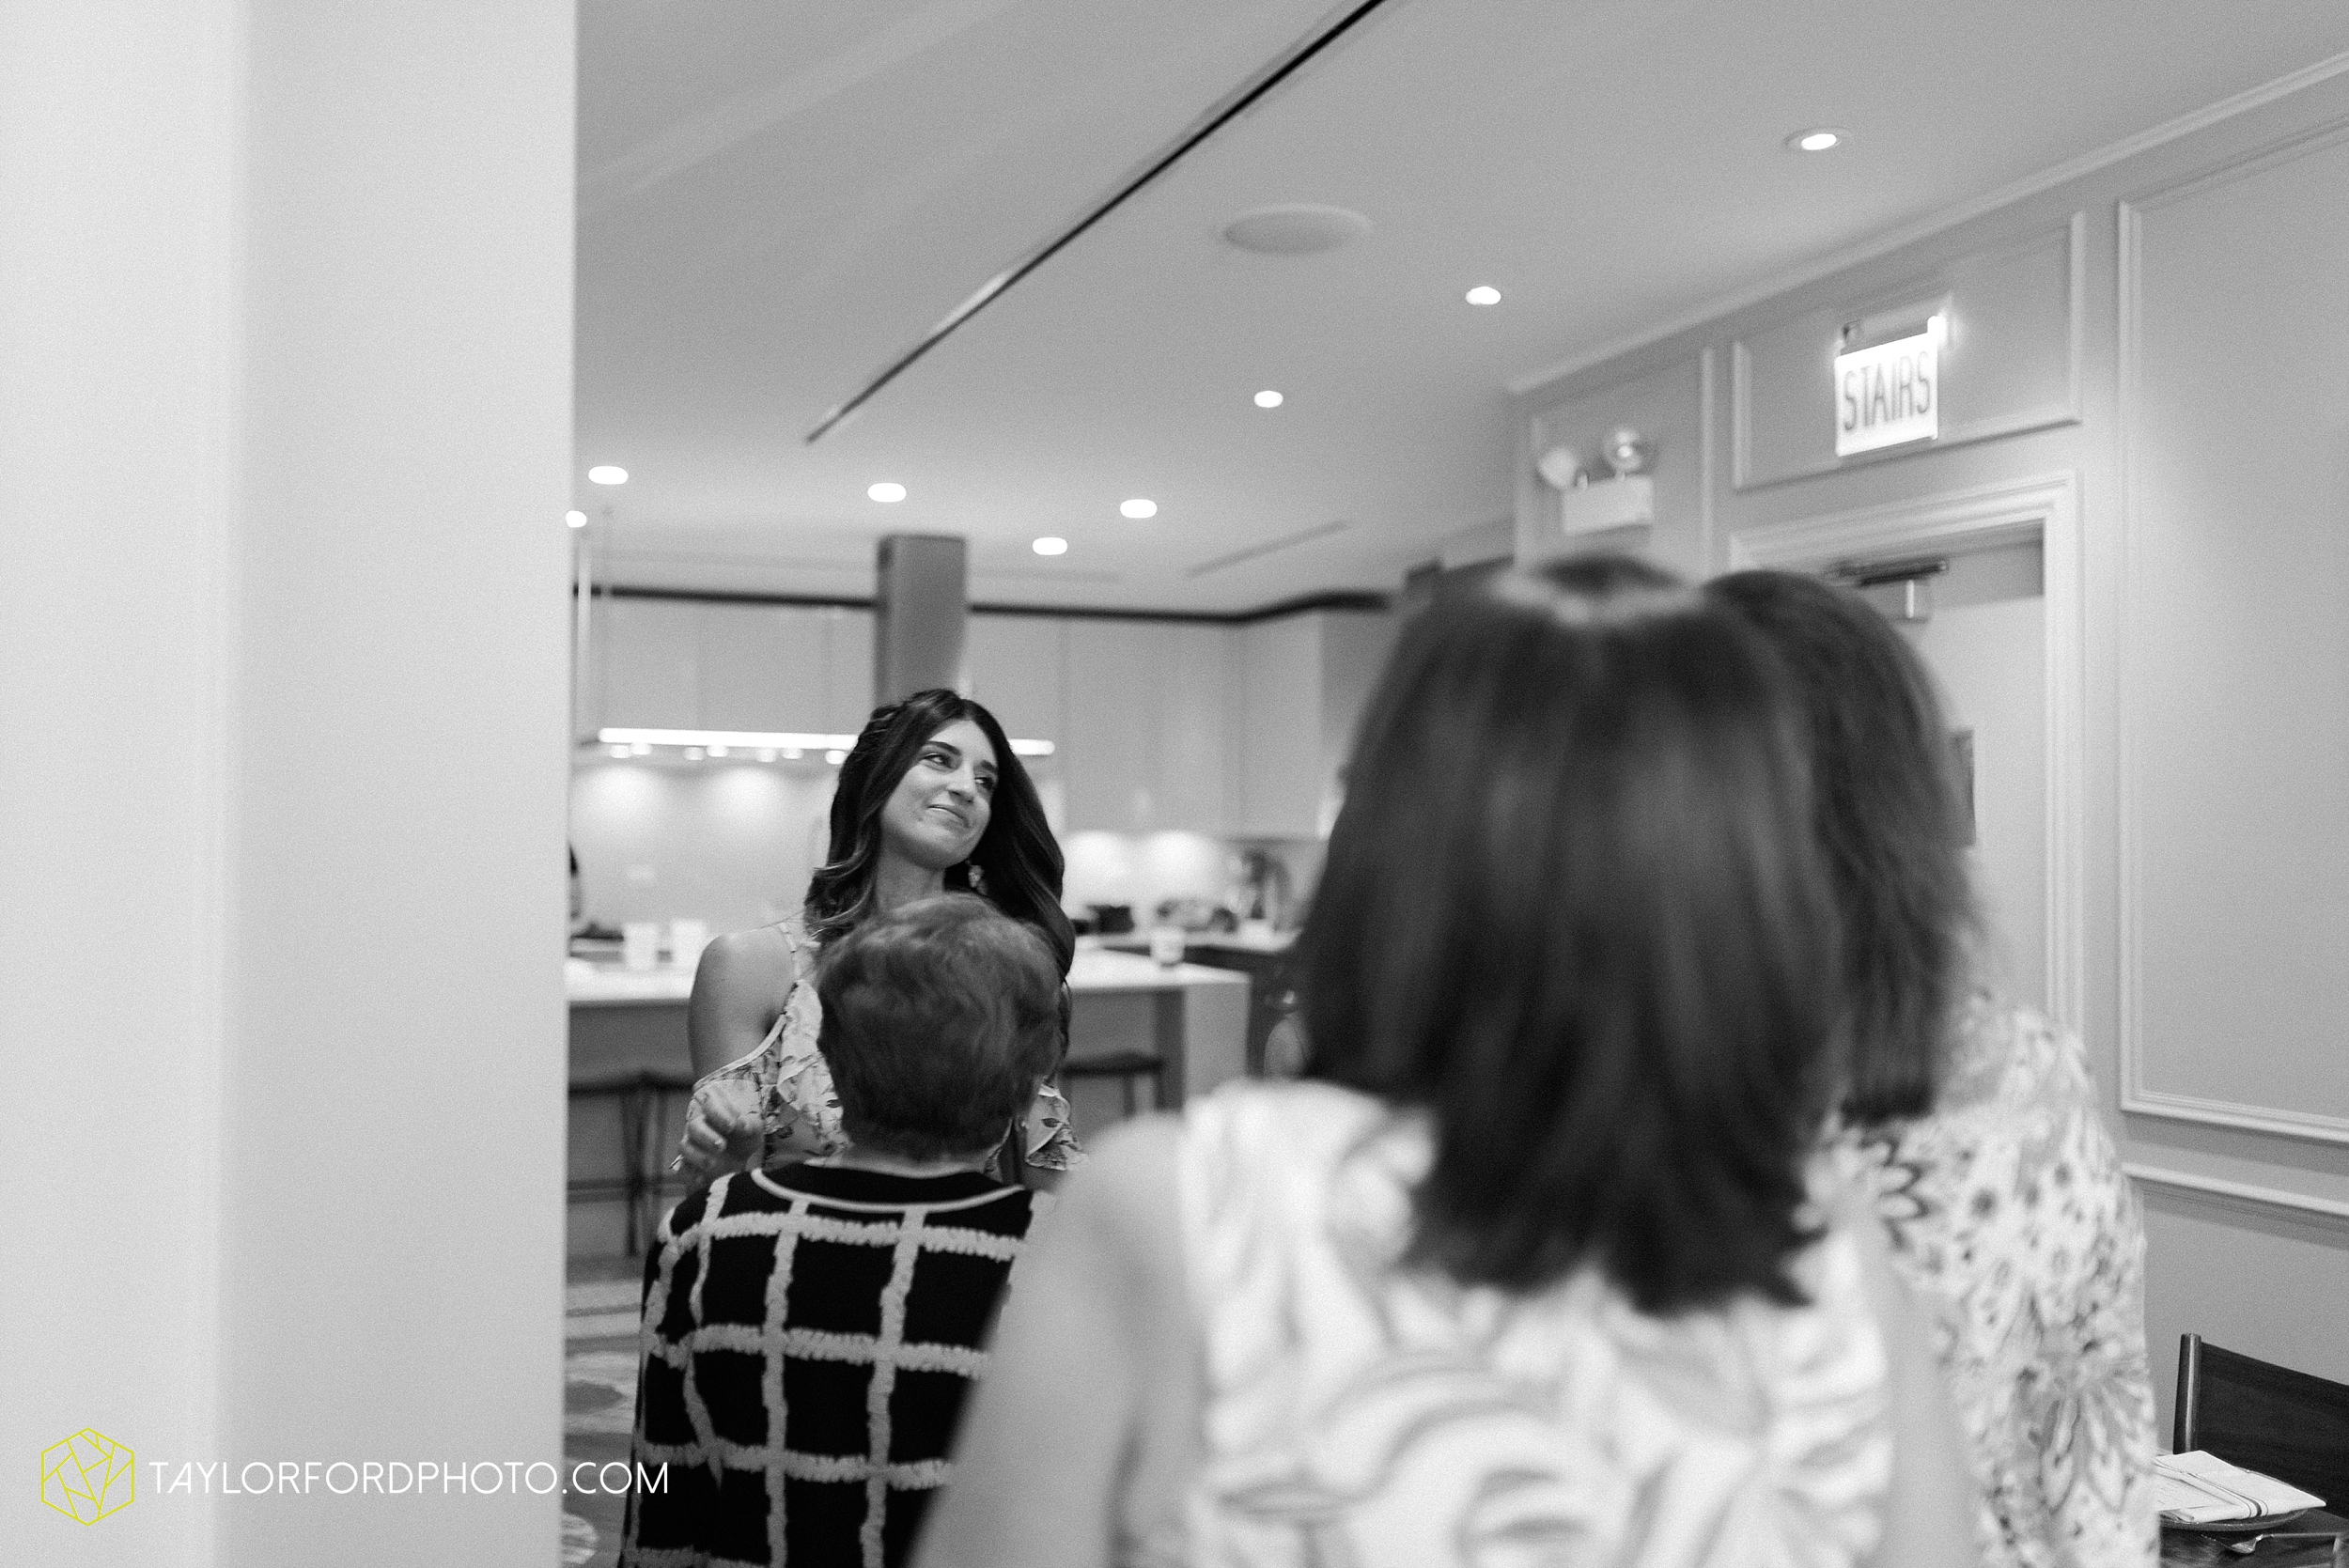 chicago-illinois-bridal-shower-little-goat-diner-west-loop-wedding-photographer-taylor-ford-photographer_8801.jpg